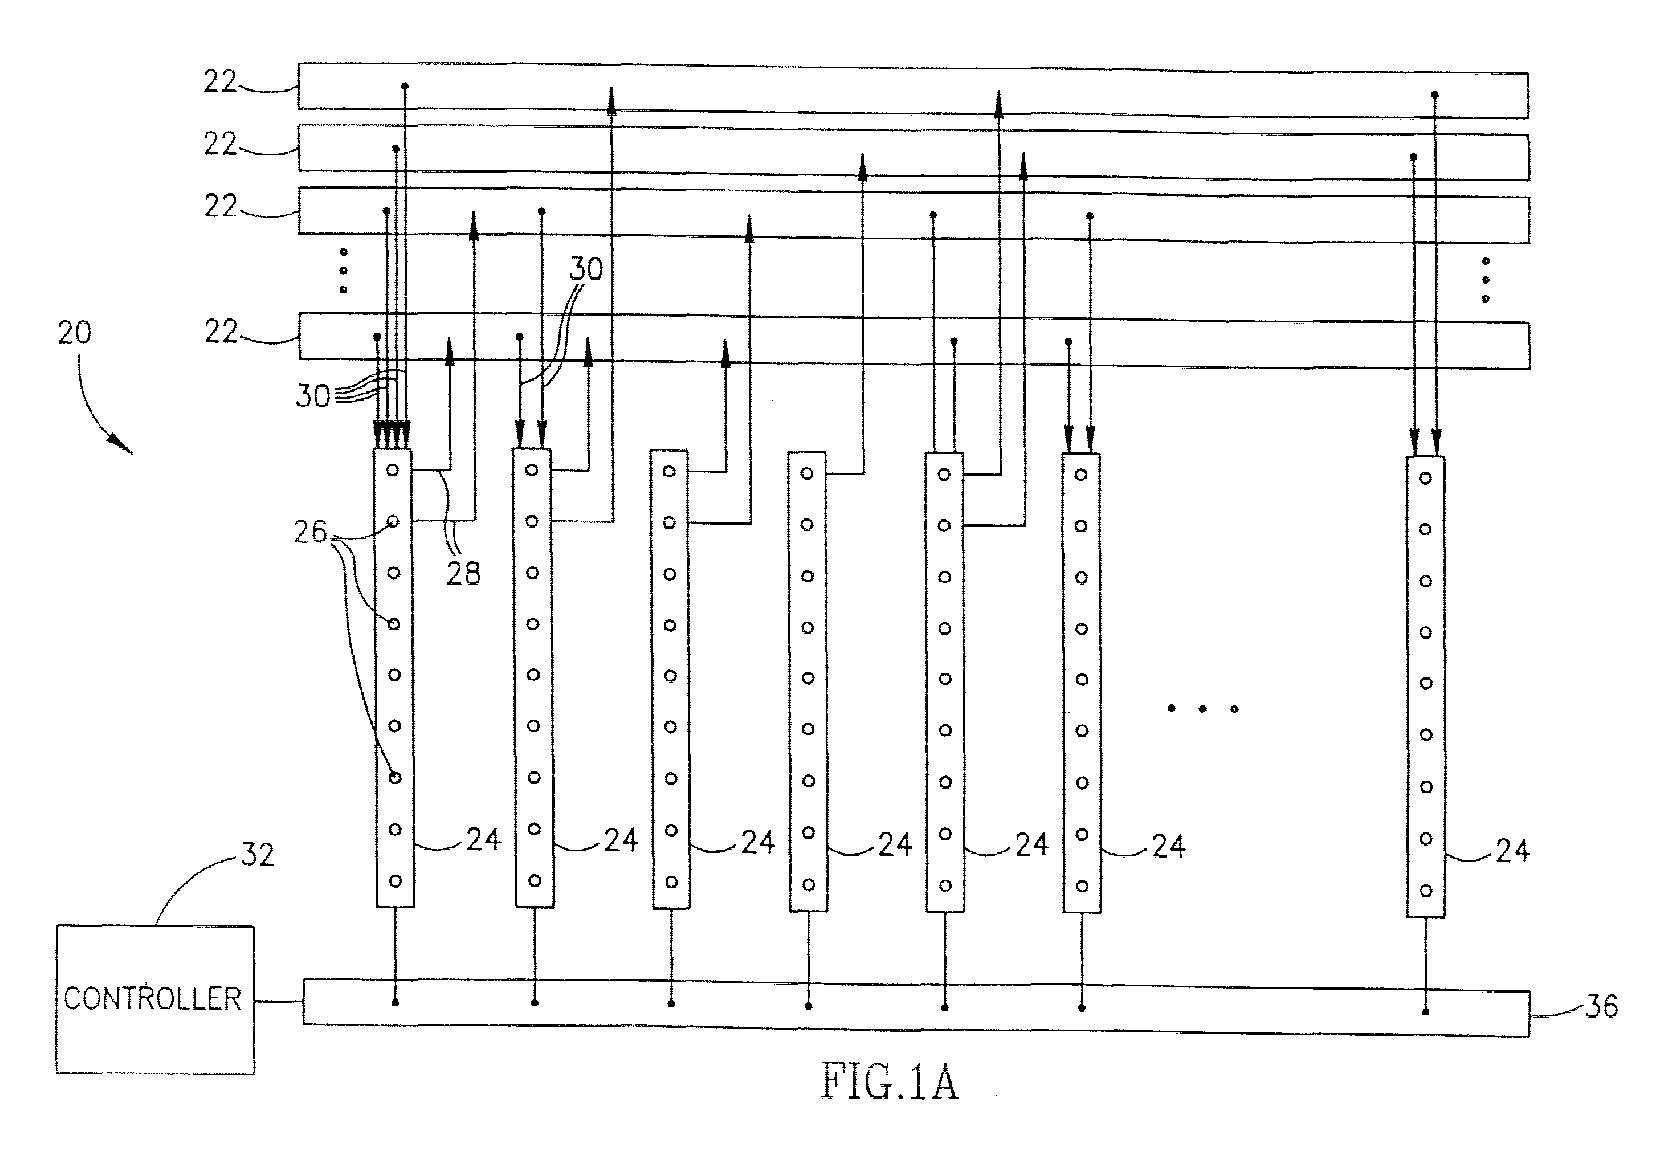 Ep1146429a1 Modular Computer Backplane Switch With Dynamic Bus Diagram Preferably The Bandwidth Capacity Of Substantially All Sub Buses Is Less Than Sum Maximal Transmission Capacities